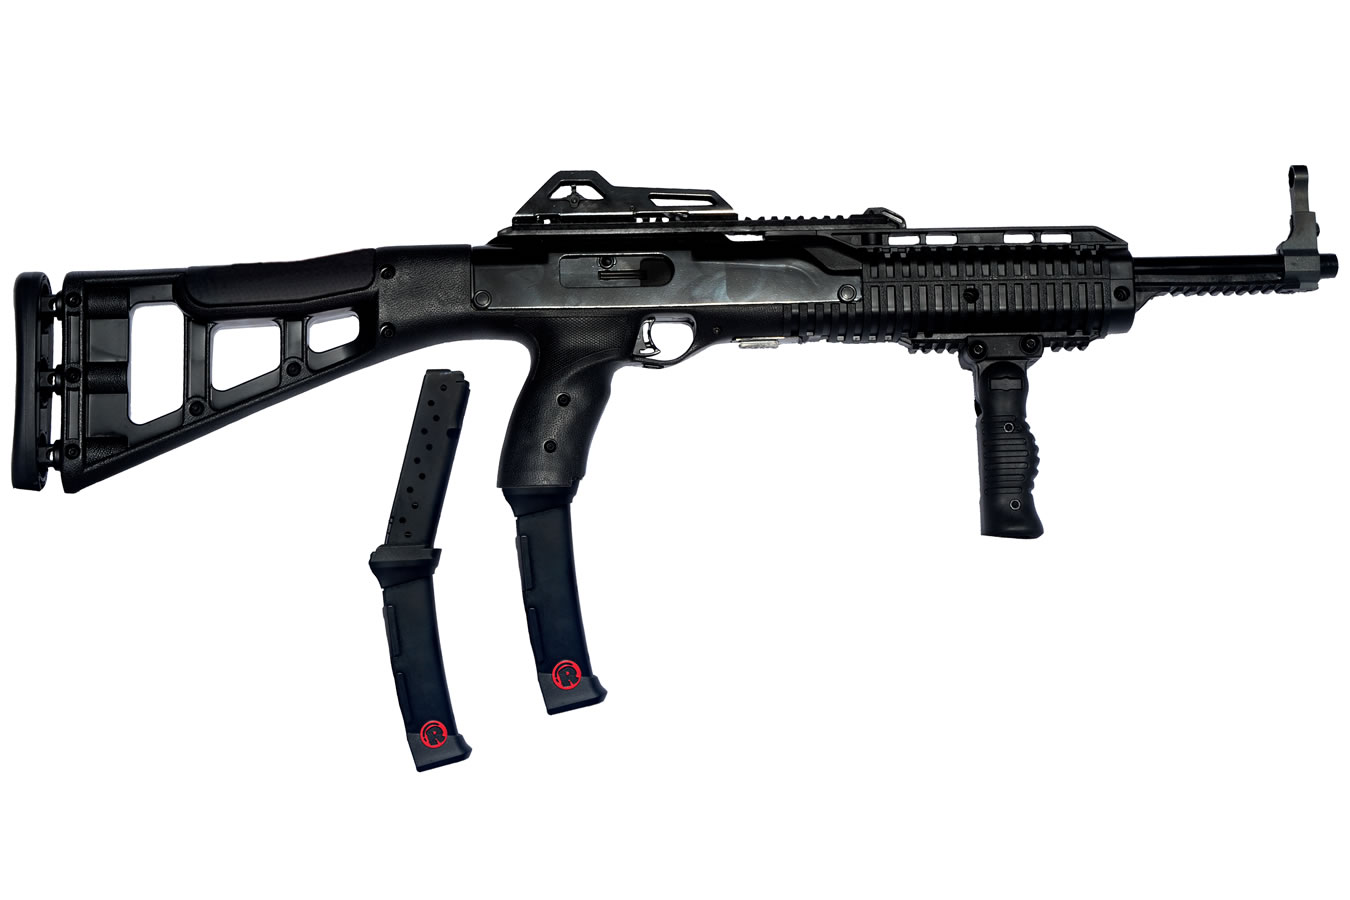 995TS 9mm Carbine with Forward Grip and Two 20-Round Magazines